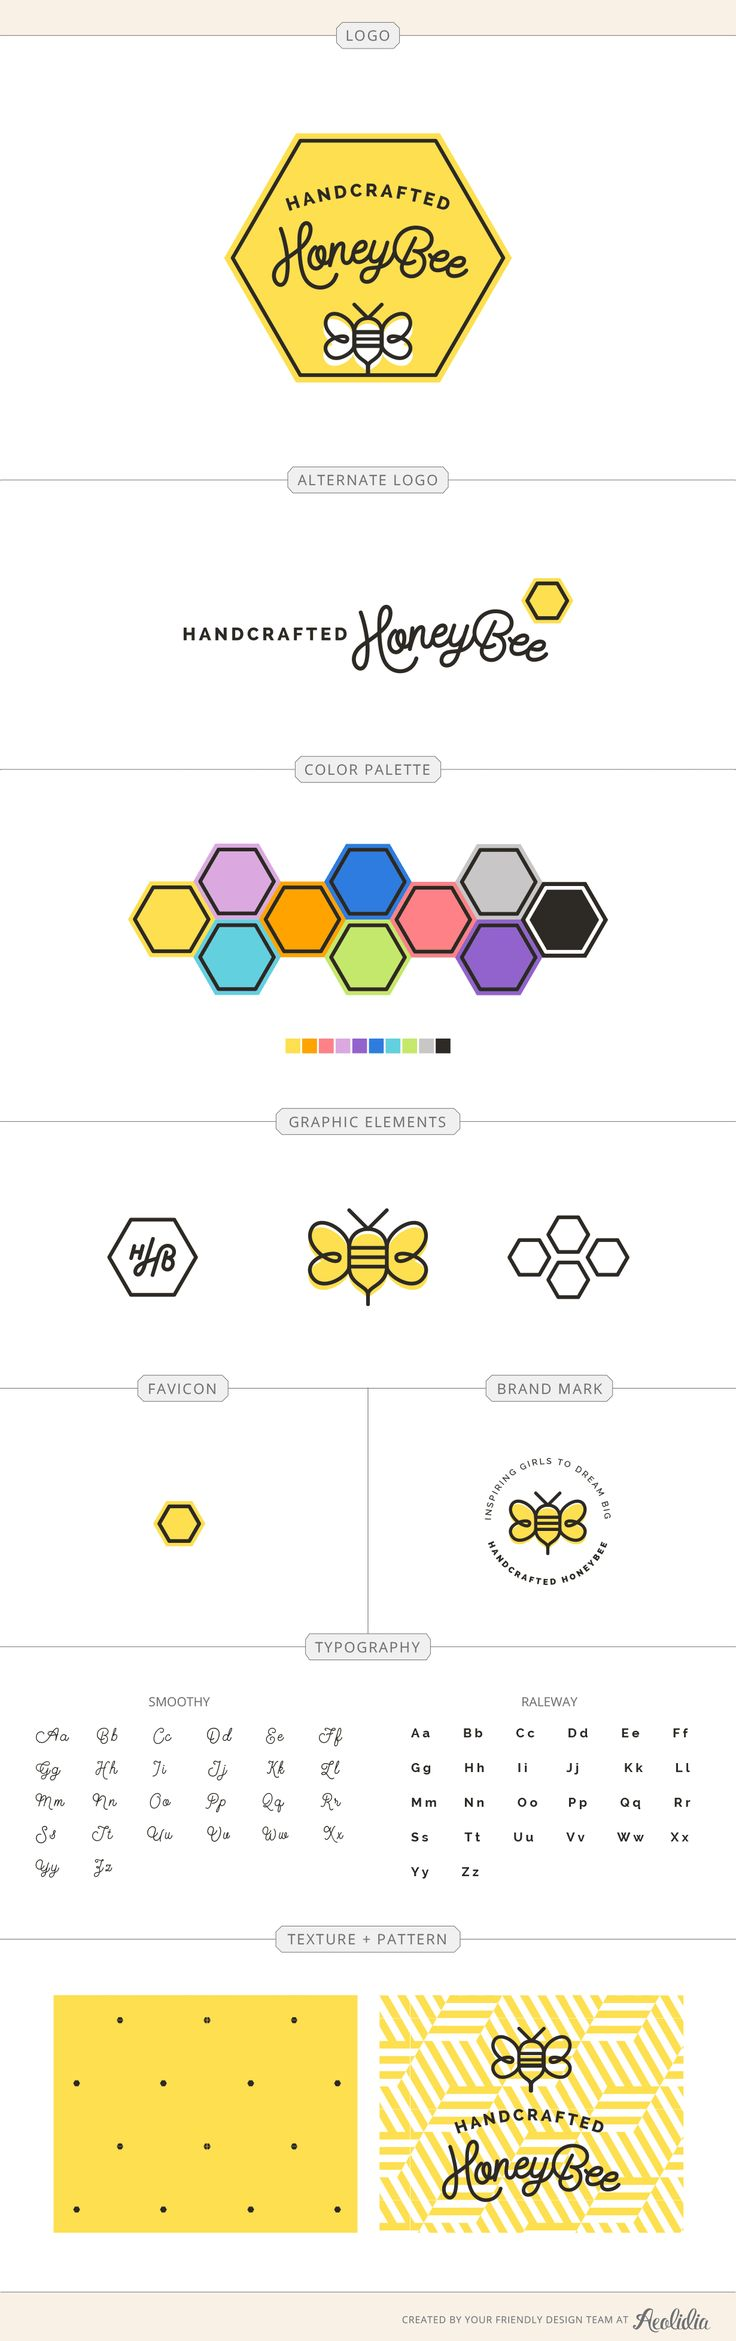 Handcrafted HoneyBee, quick brand board. Brand identity guide for a skincare and…